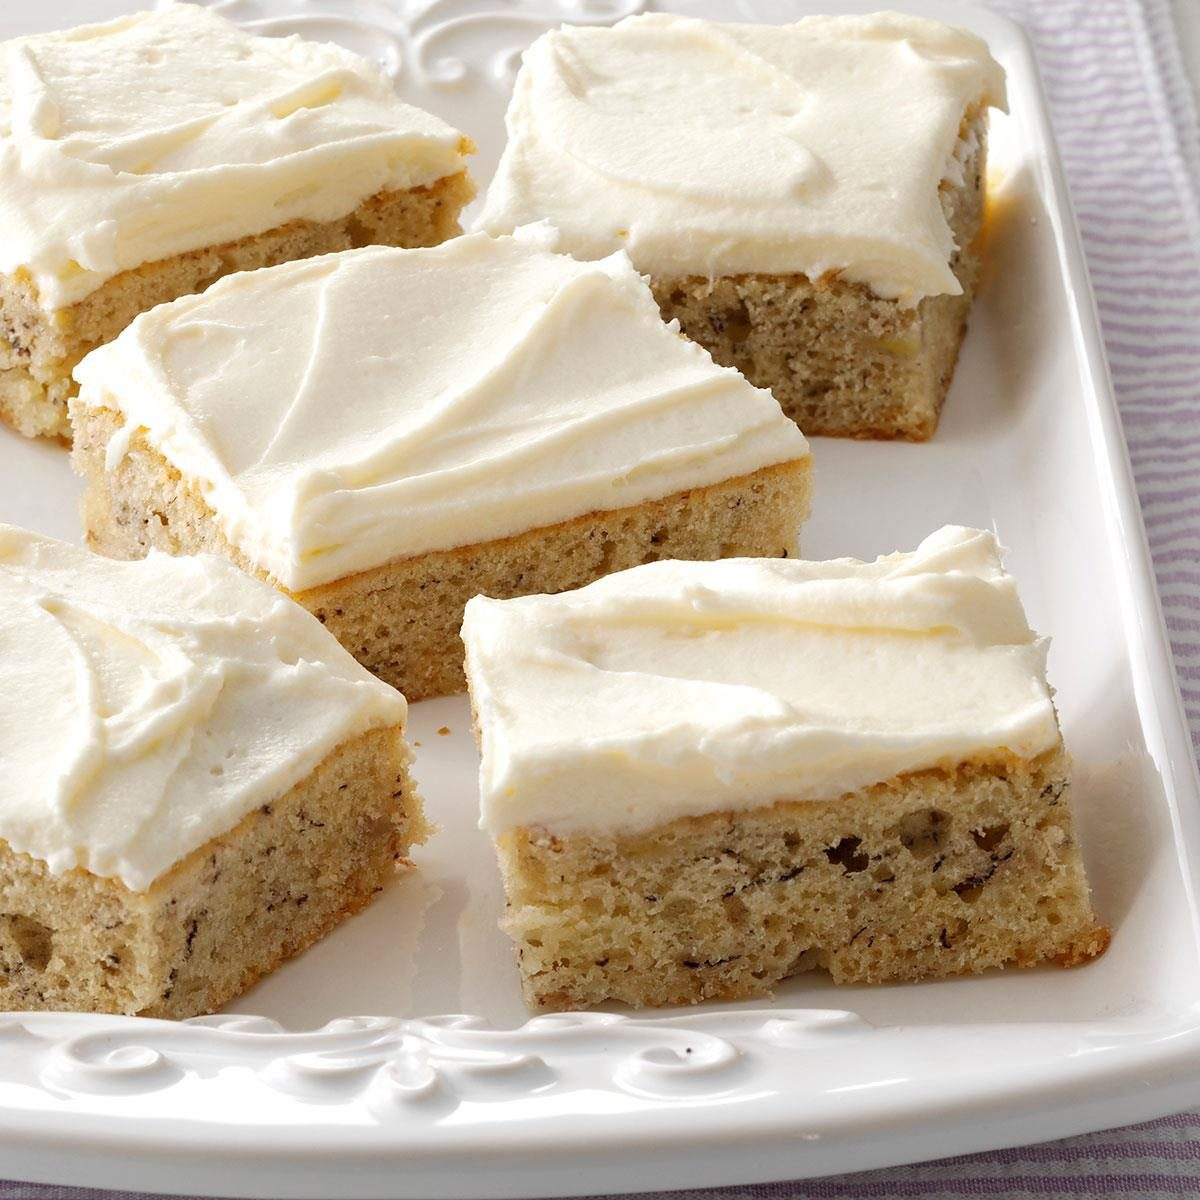 Pineapple Banana Cake With Cream Cheese Frosting